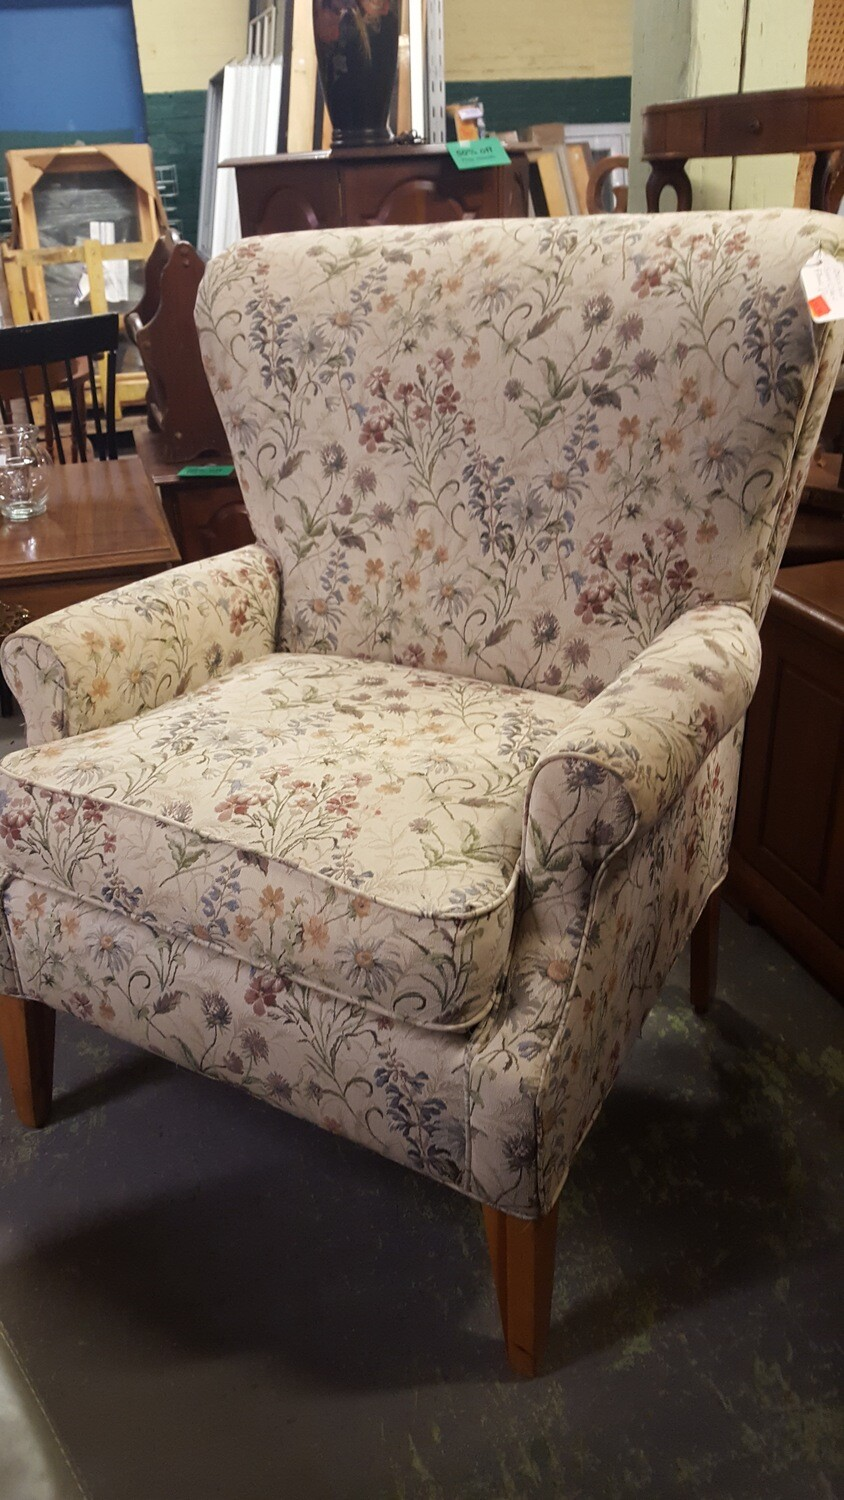 Arm chair with wildflower print